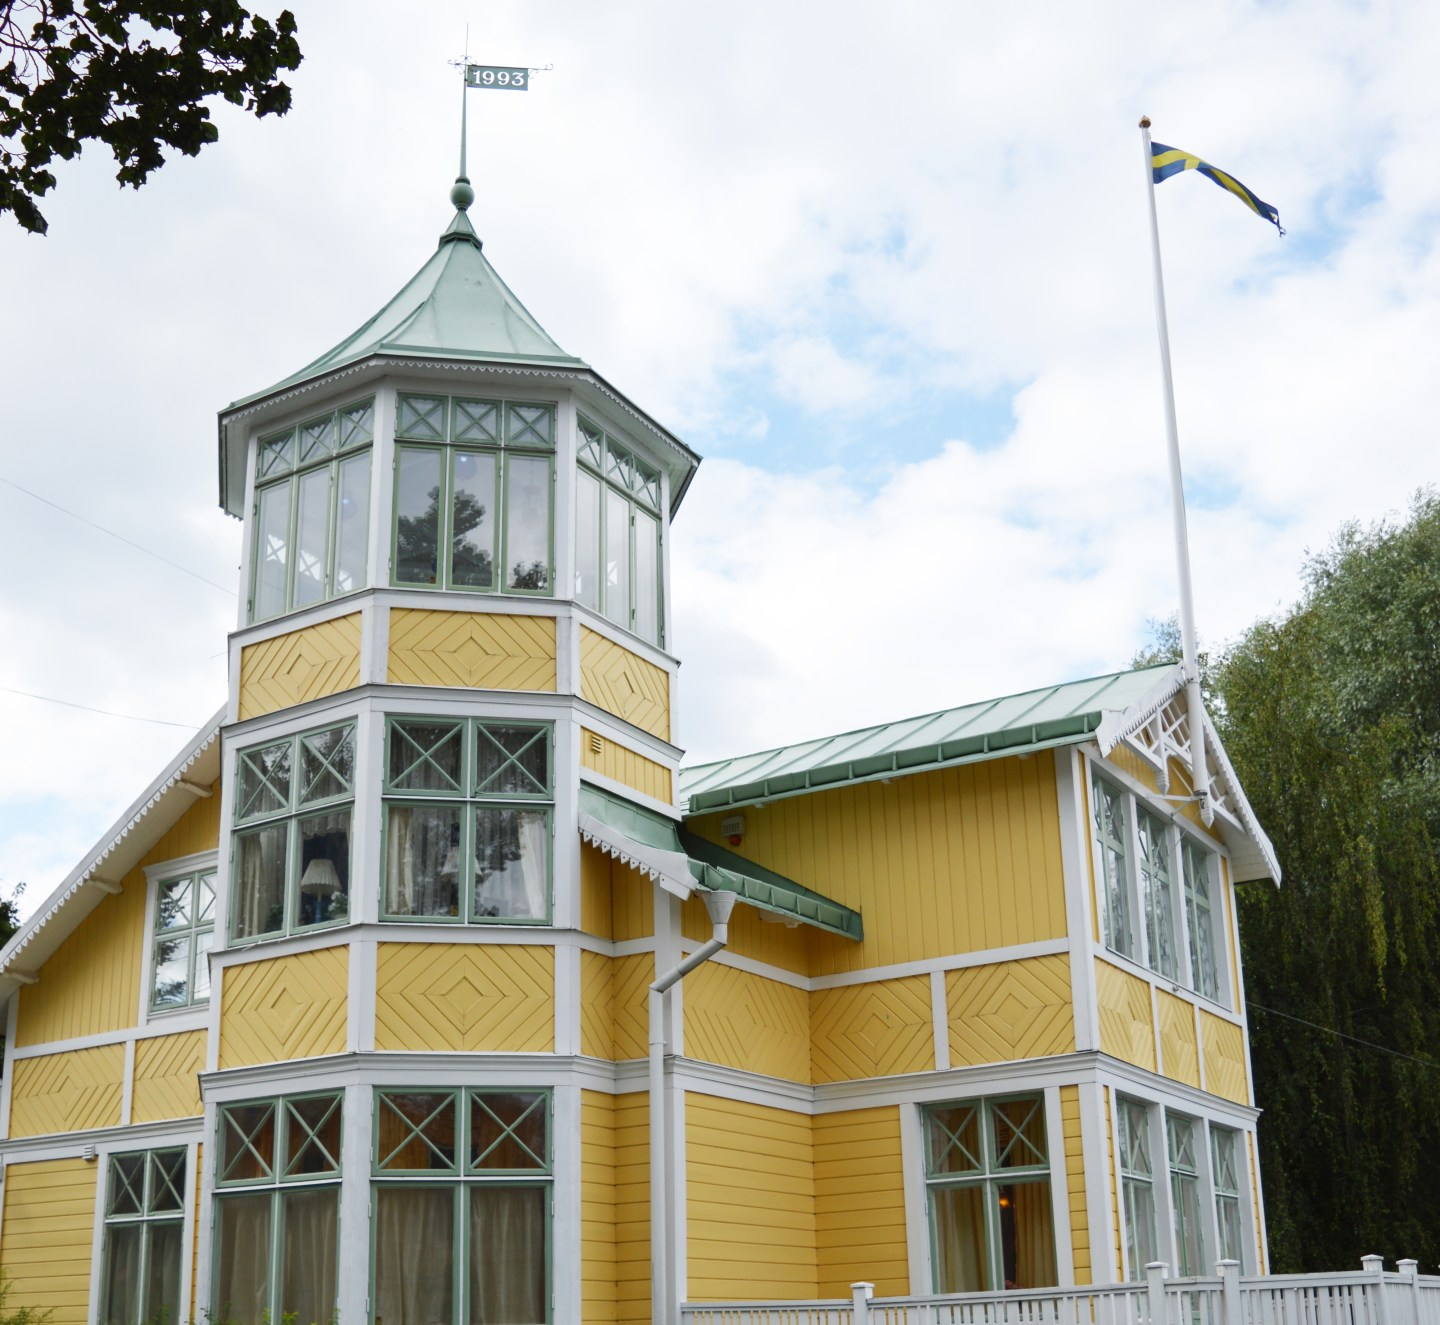 house_vaxholm_yellow_sweden